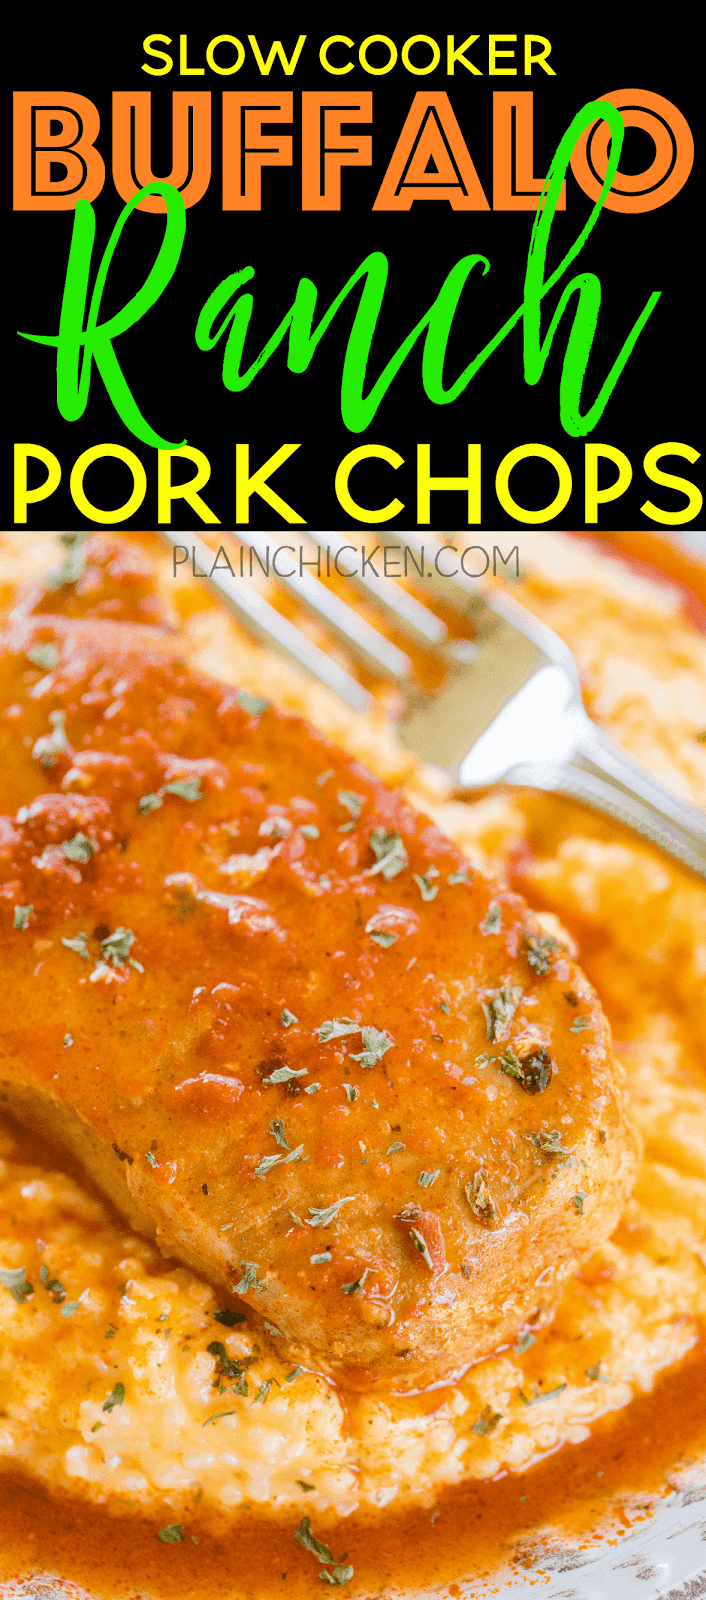 Slow Cooker Buffalo Ranch Pork Chops - only 3 ingredients! These are some of the best pork chops we've ever eaten! So simple and SOOOO good!!!! Everyone cleaned their plate! Great for watching football! Serve over cheddar ranch grits! TO-DIE-FOR! YUM!